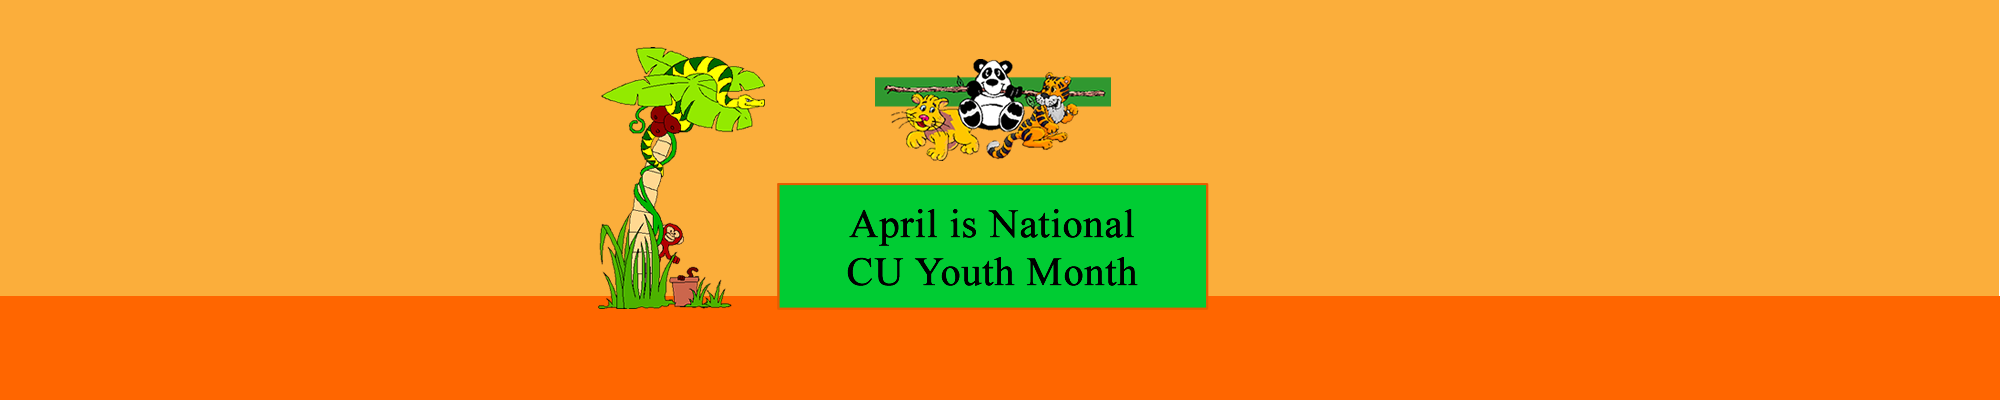 National CU Youth Month